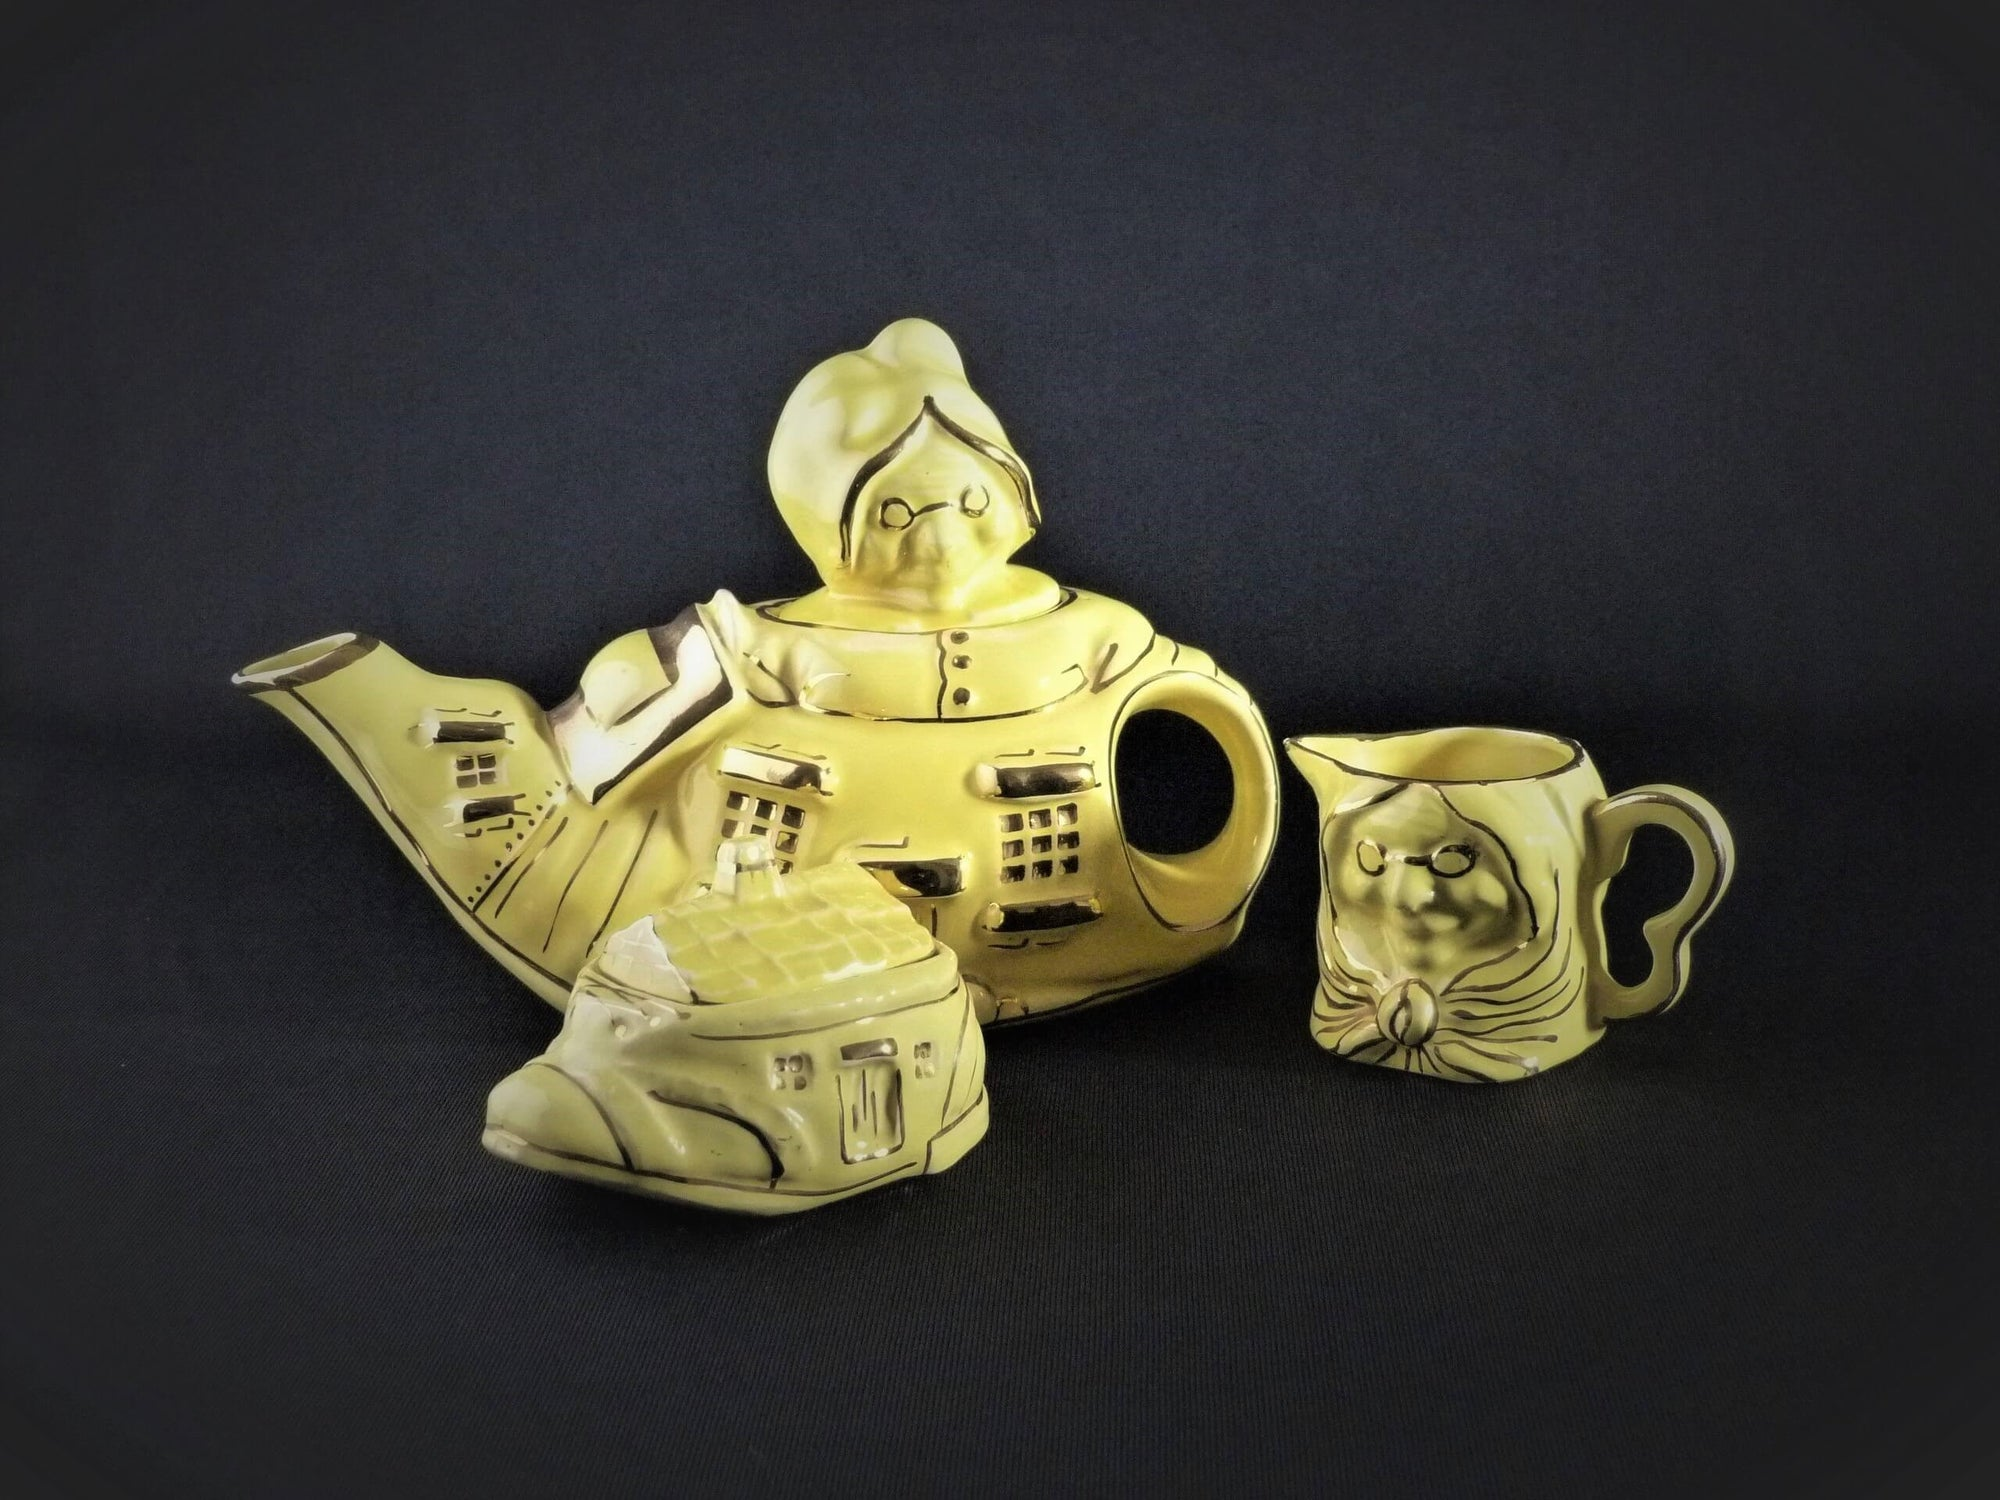 Vintage Tea Set, The Old Woman In The Shoe Tea Set, English China